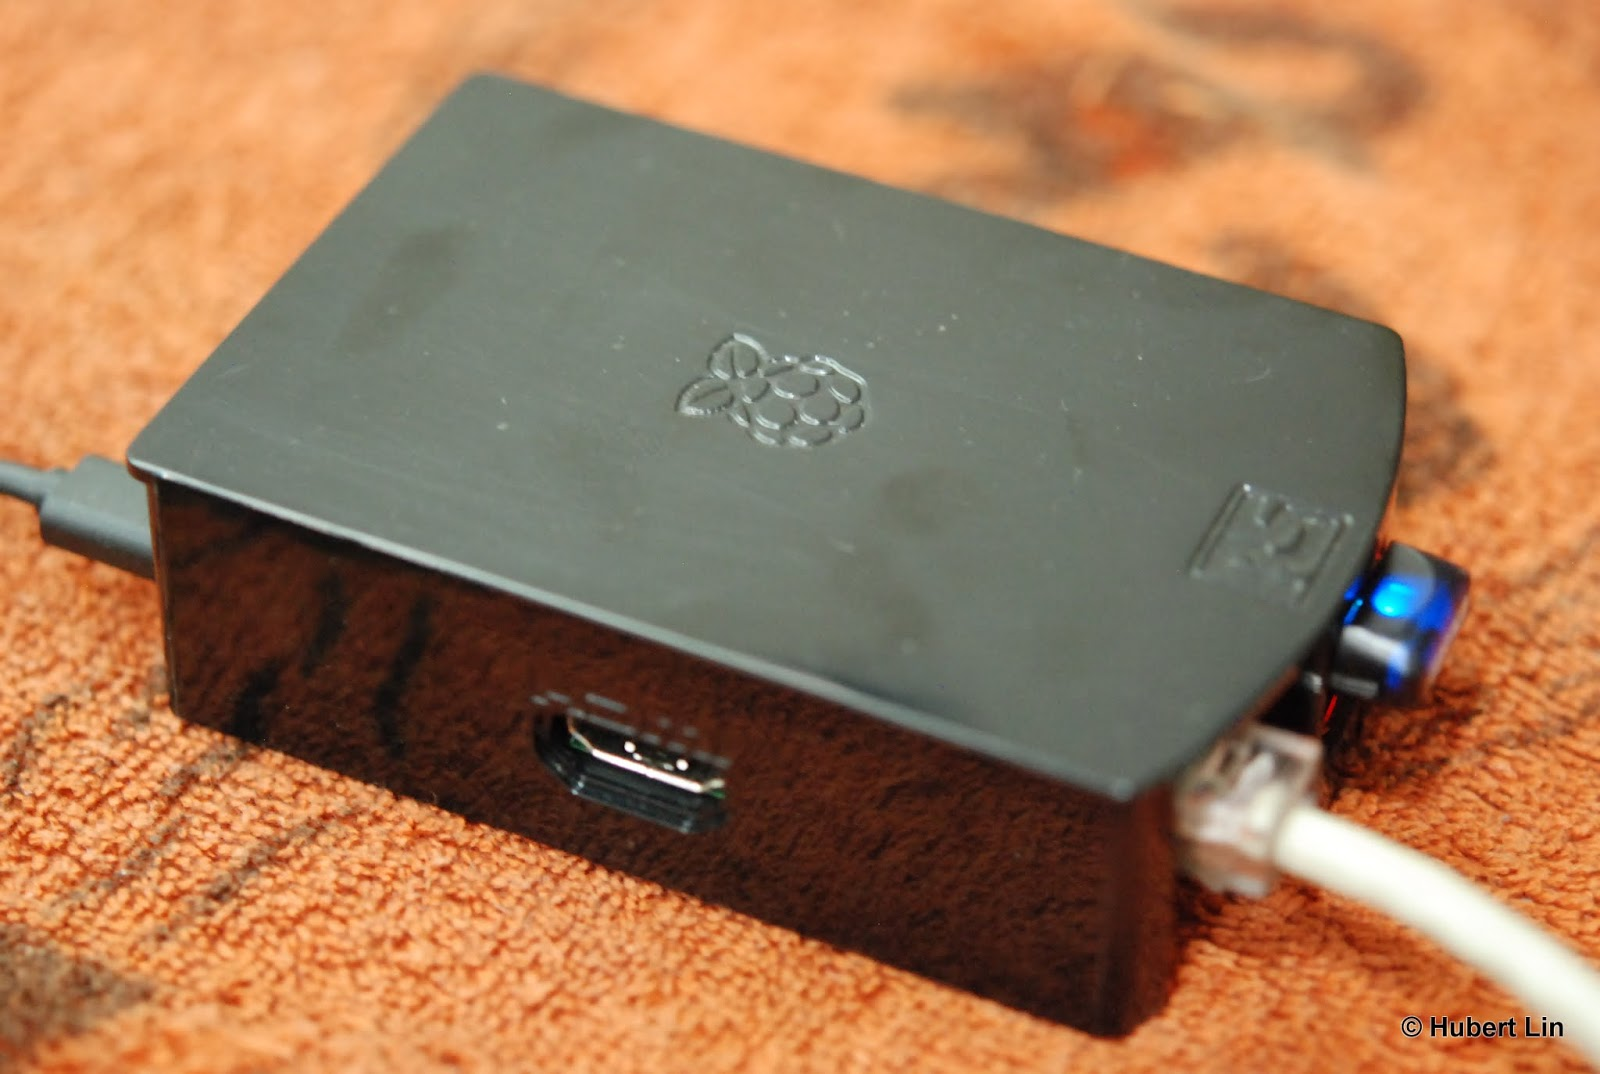 Hubert's Lingineering Bay: Raspberry Pi As A Wi-Fi Access Point